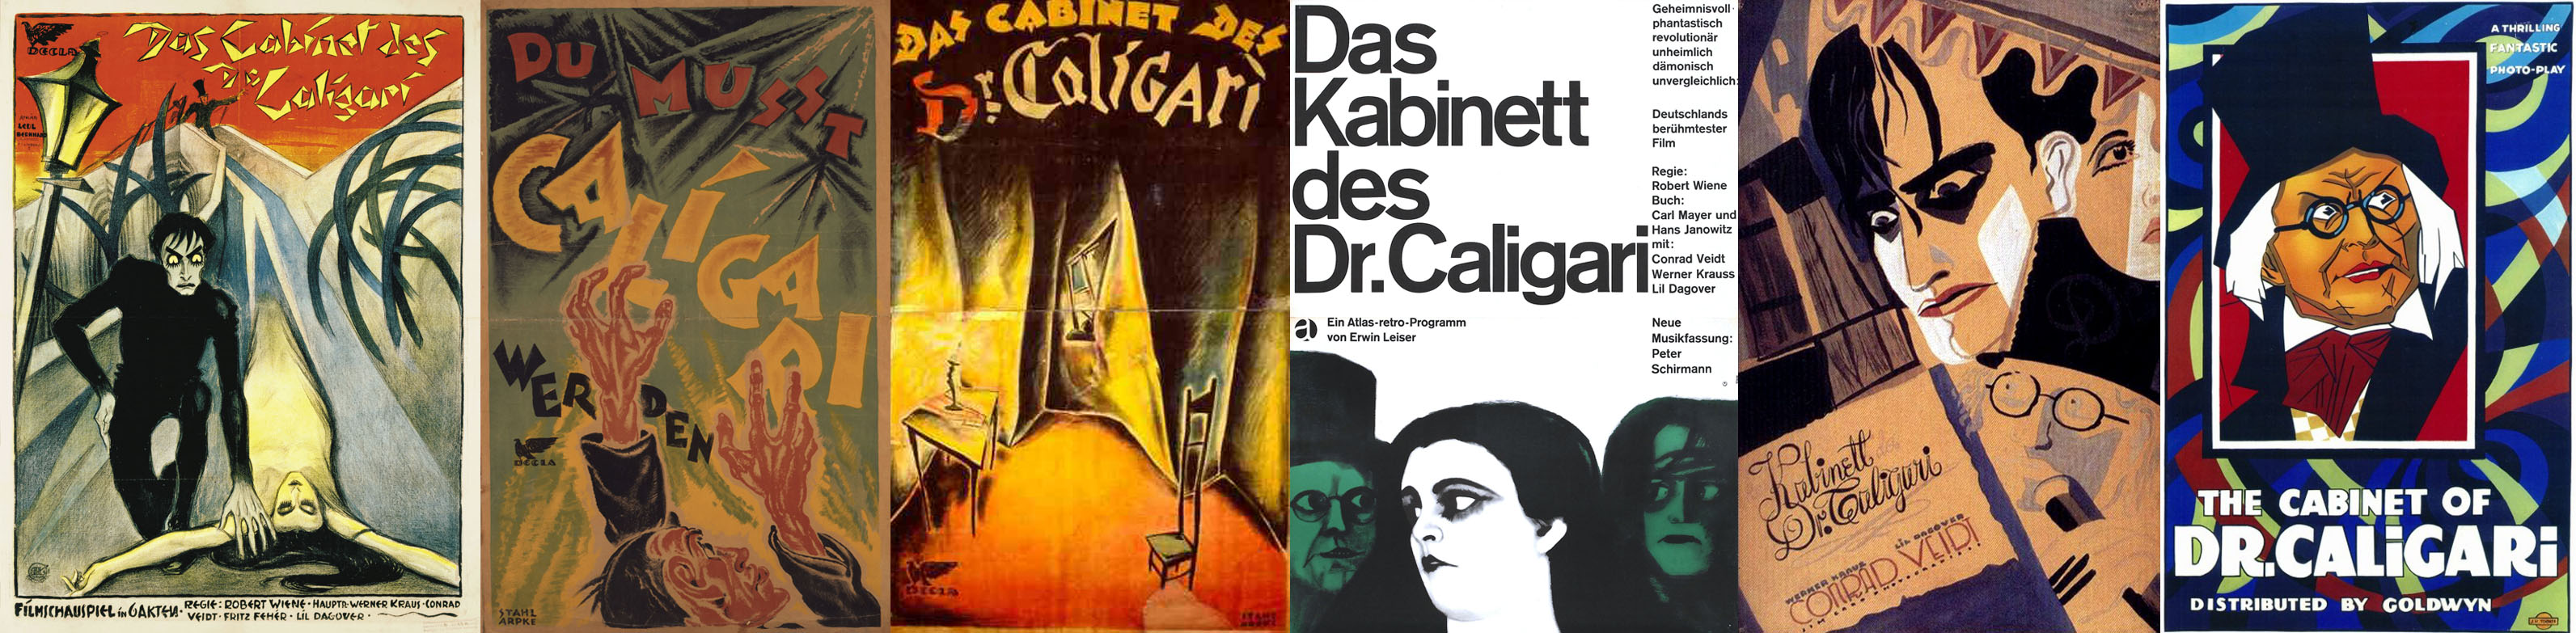 The Cabinet of Dr Caligari_poster banner | socialpsychol